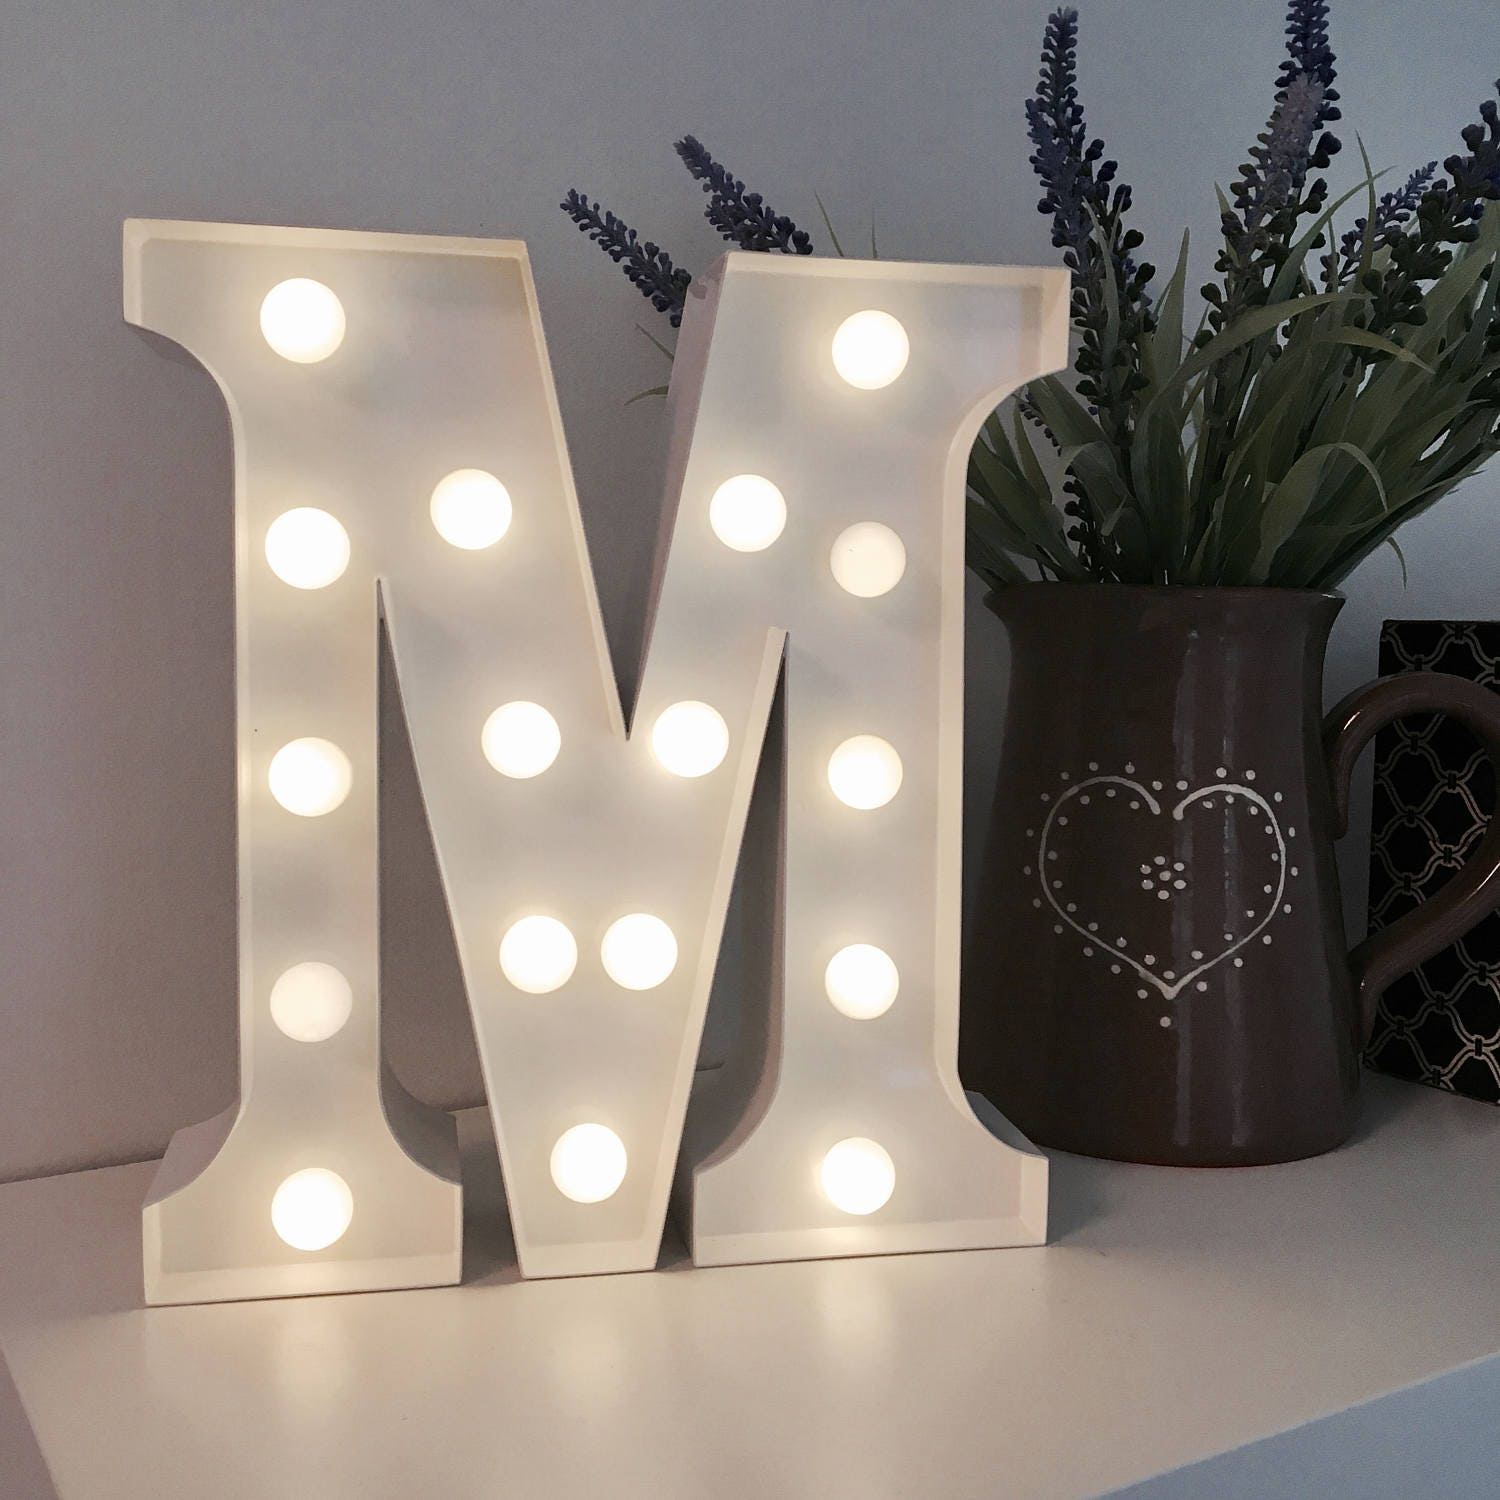 tall lights up love bulbs lighting letter fairground asp with p light marquee sign